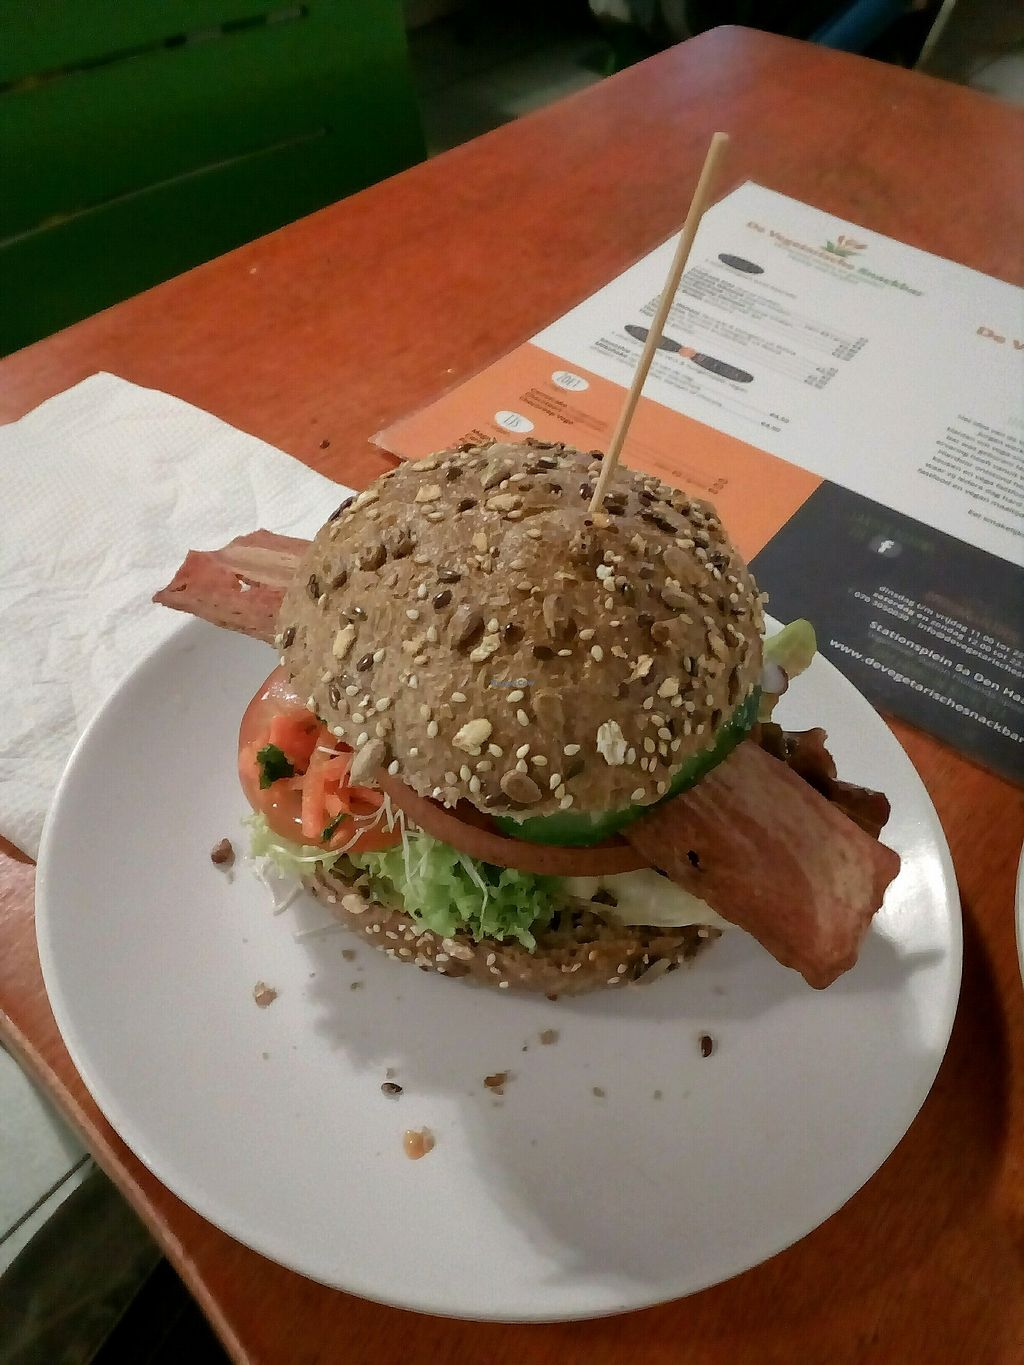 """Photo of De Vegetarische Snackbar  by <a href=""""/members/profile/wyrd"""">wyrd</a> <br/>vegan bacon burger <br/> September 25, 2017  - <a href='/contact/abuse/image/37902/308457'>Report</a>"""